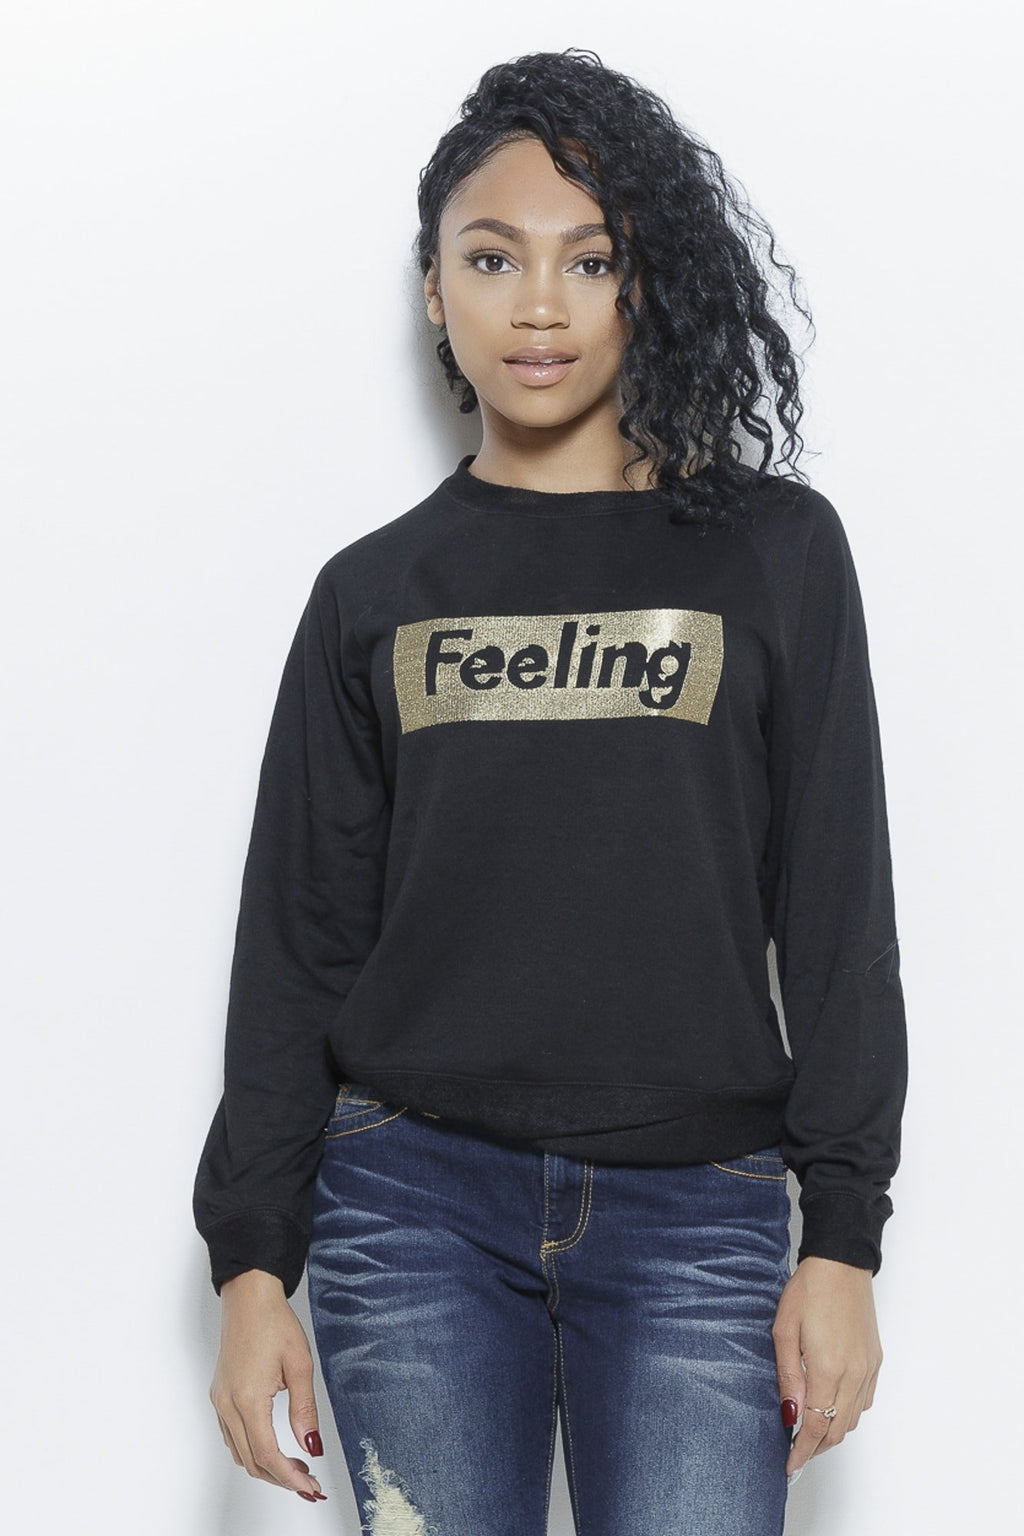 fair-shade - IN MY FEELINGS Sweatshirt - Clothing